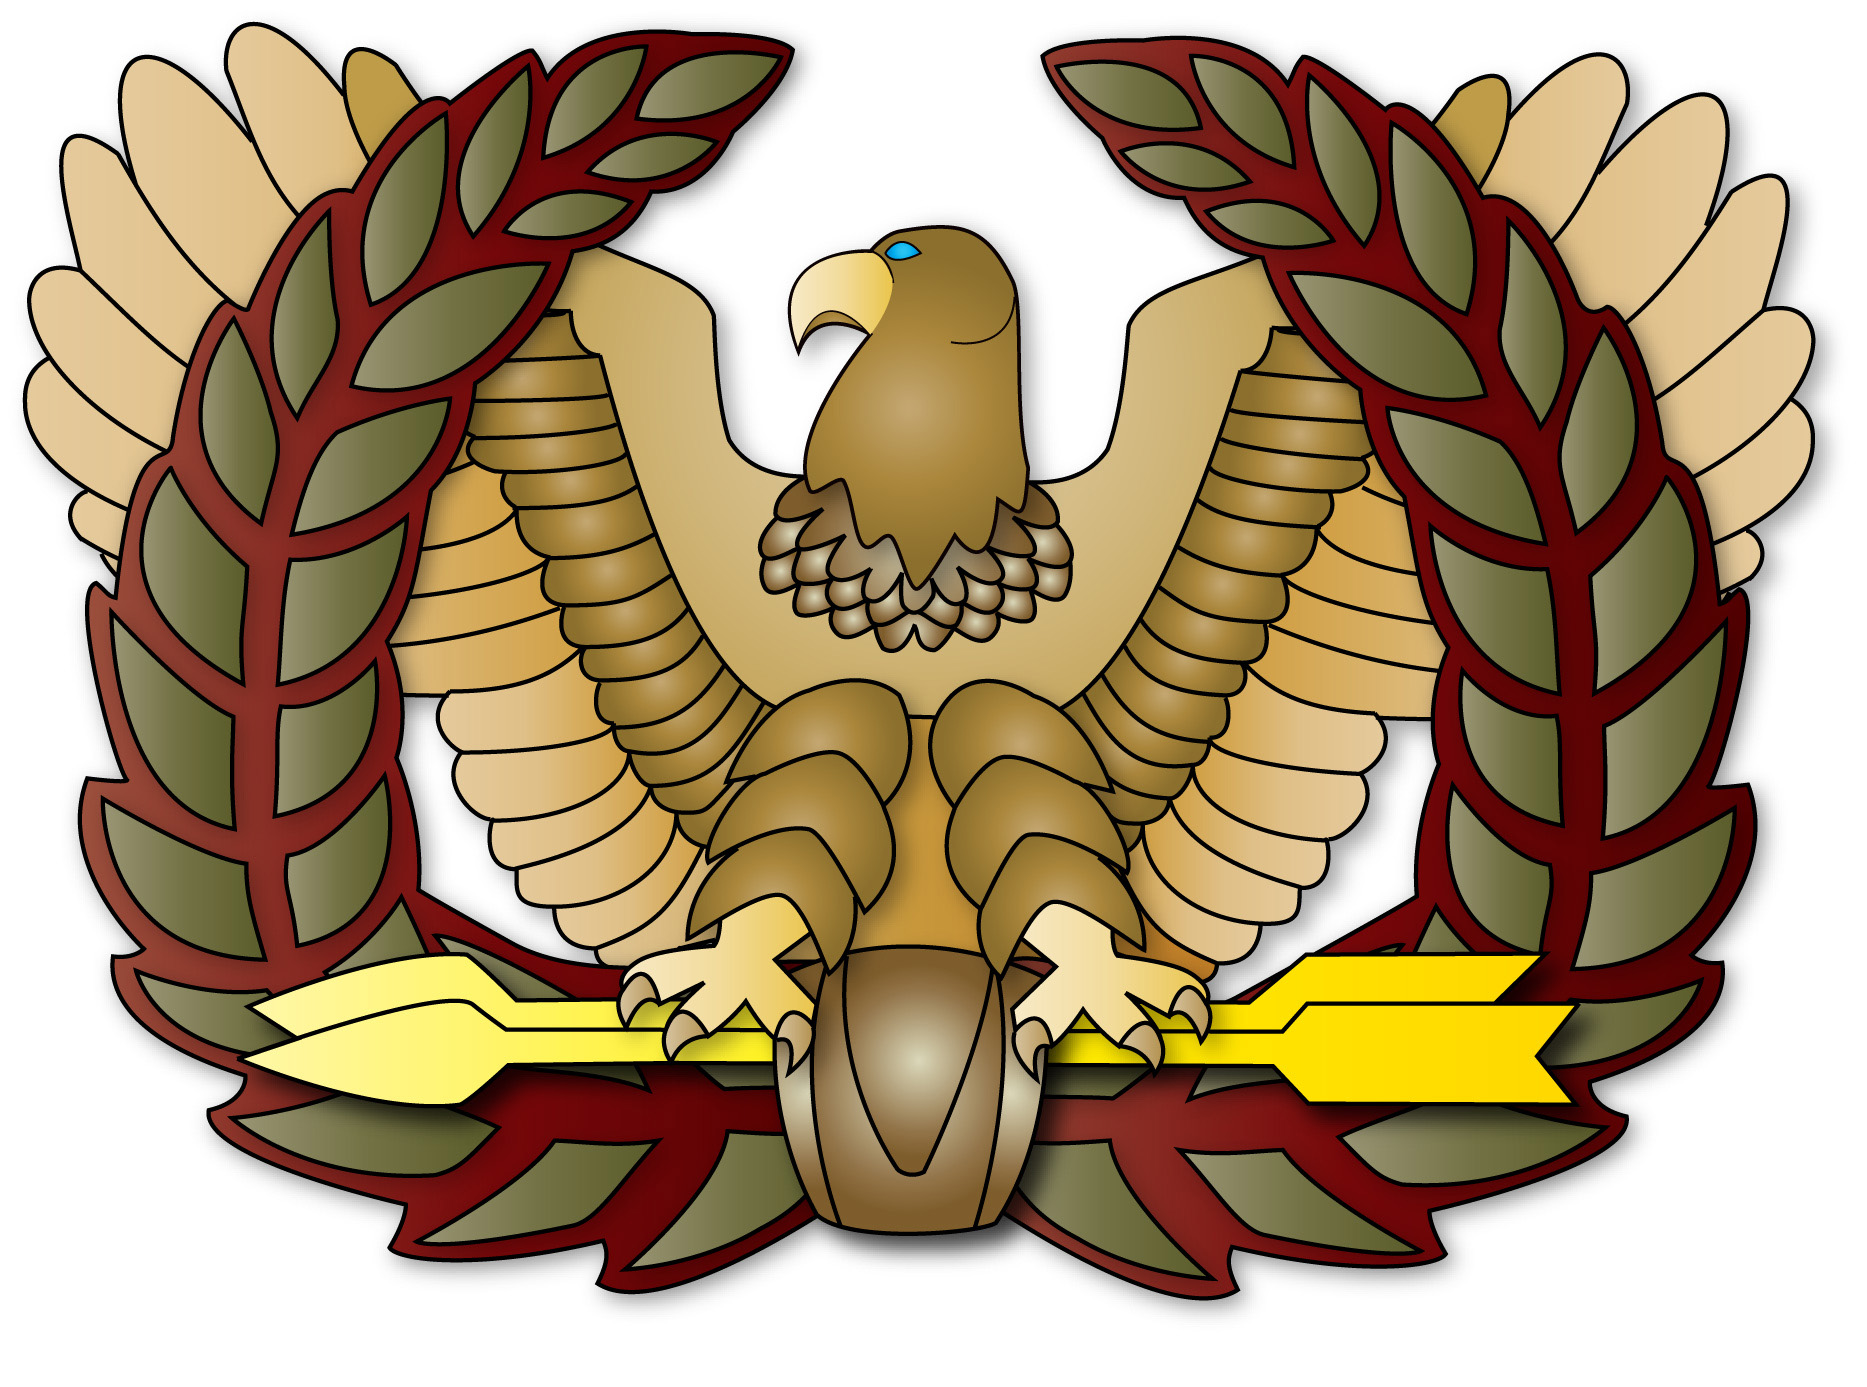 US Army Warrant Officer Insignia free image.